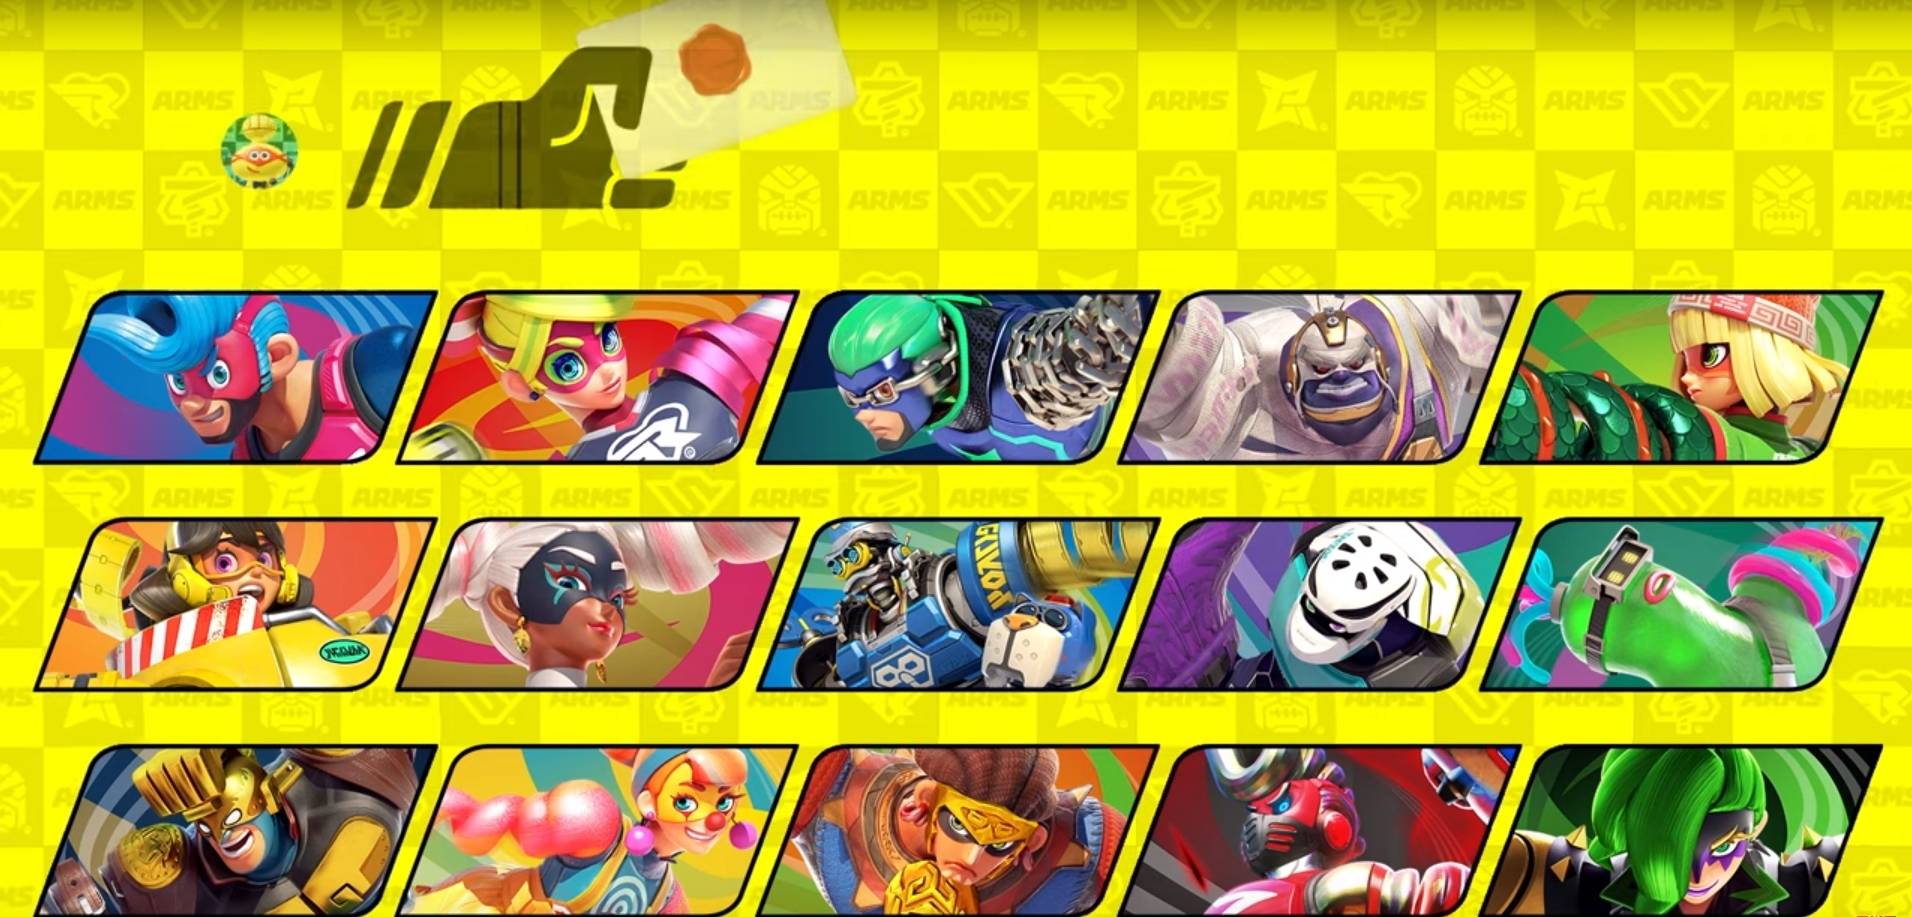 Nintendo Announces Next Super Smash Bros. Ultimate DLC Character To Be From The Cast Of ARMS